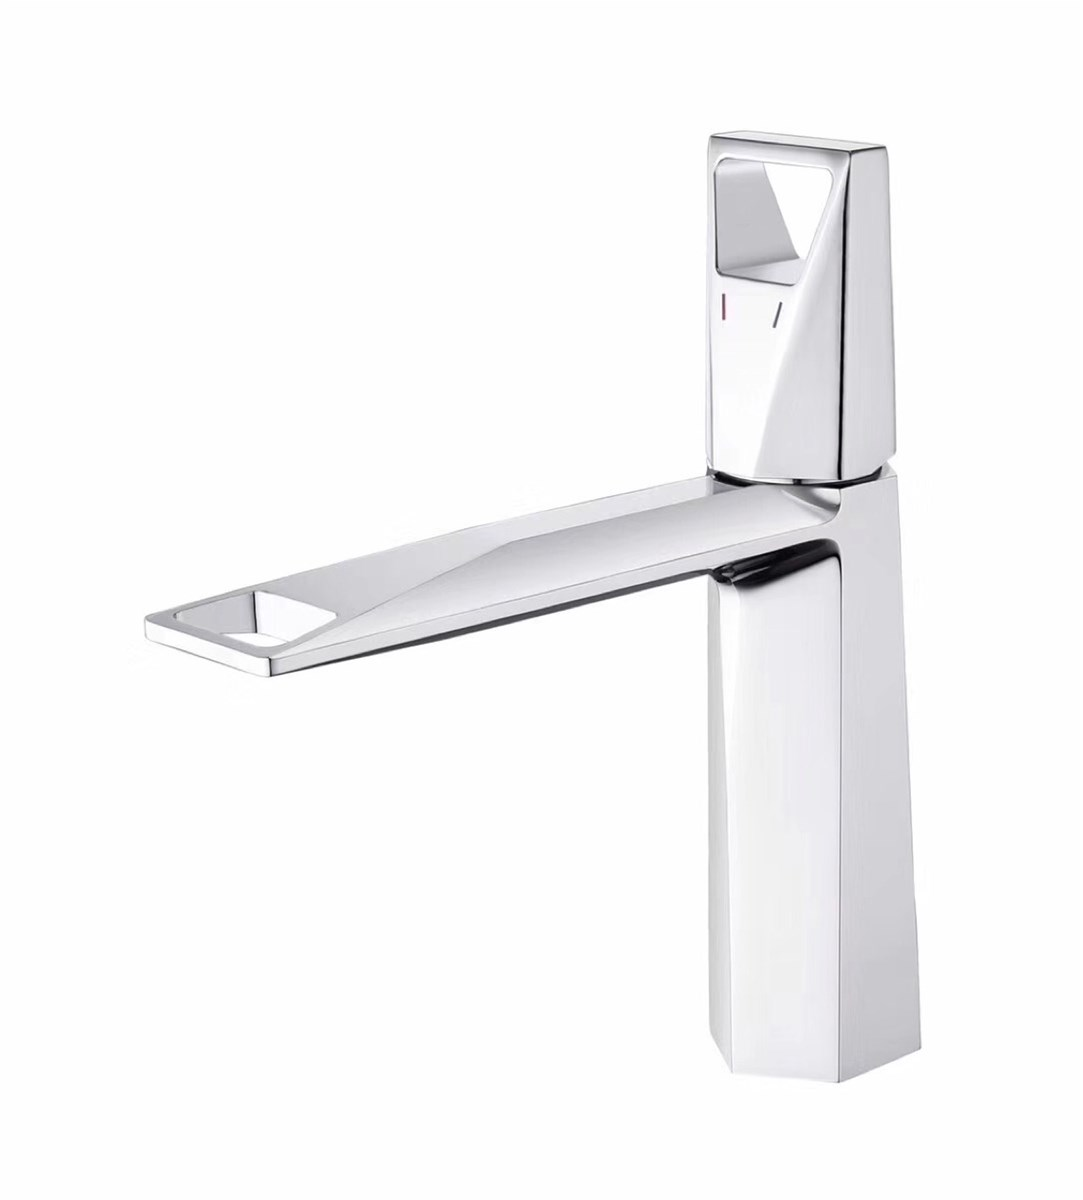 2020 new design brass hot and cold basin mixer faucet chrome finish